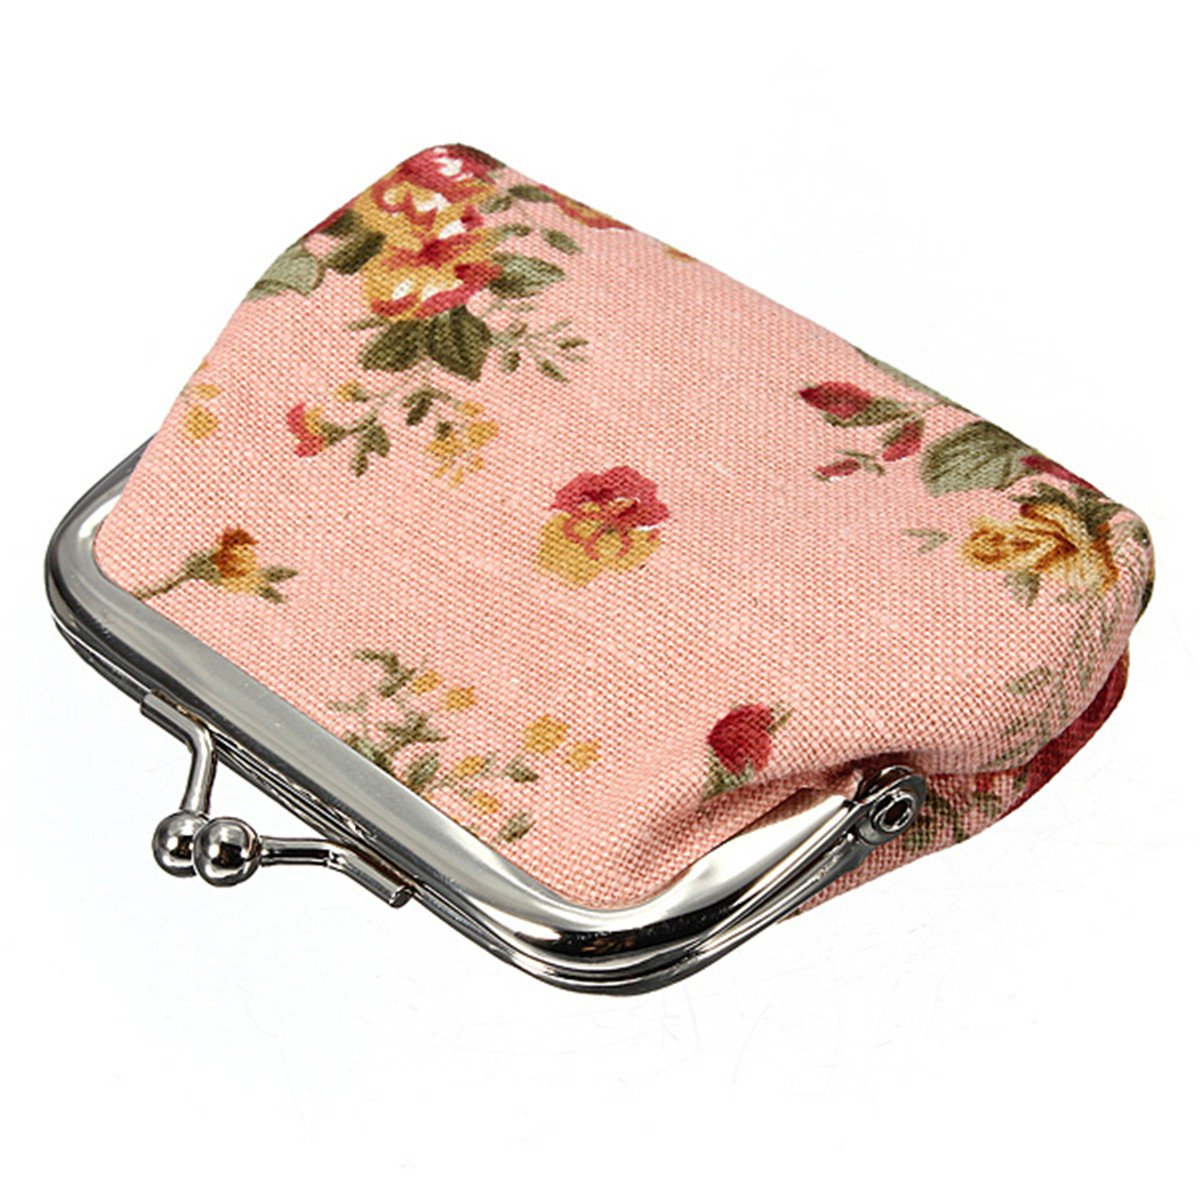 FGGS Hot StyleWomen Roses Floral Fabric Clip Mini Small Coin Pocket Purse Bag Clutch